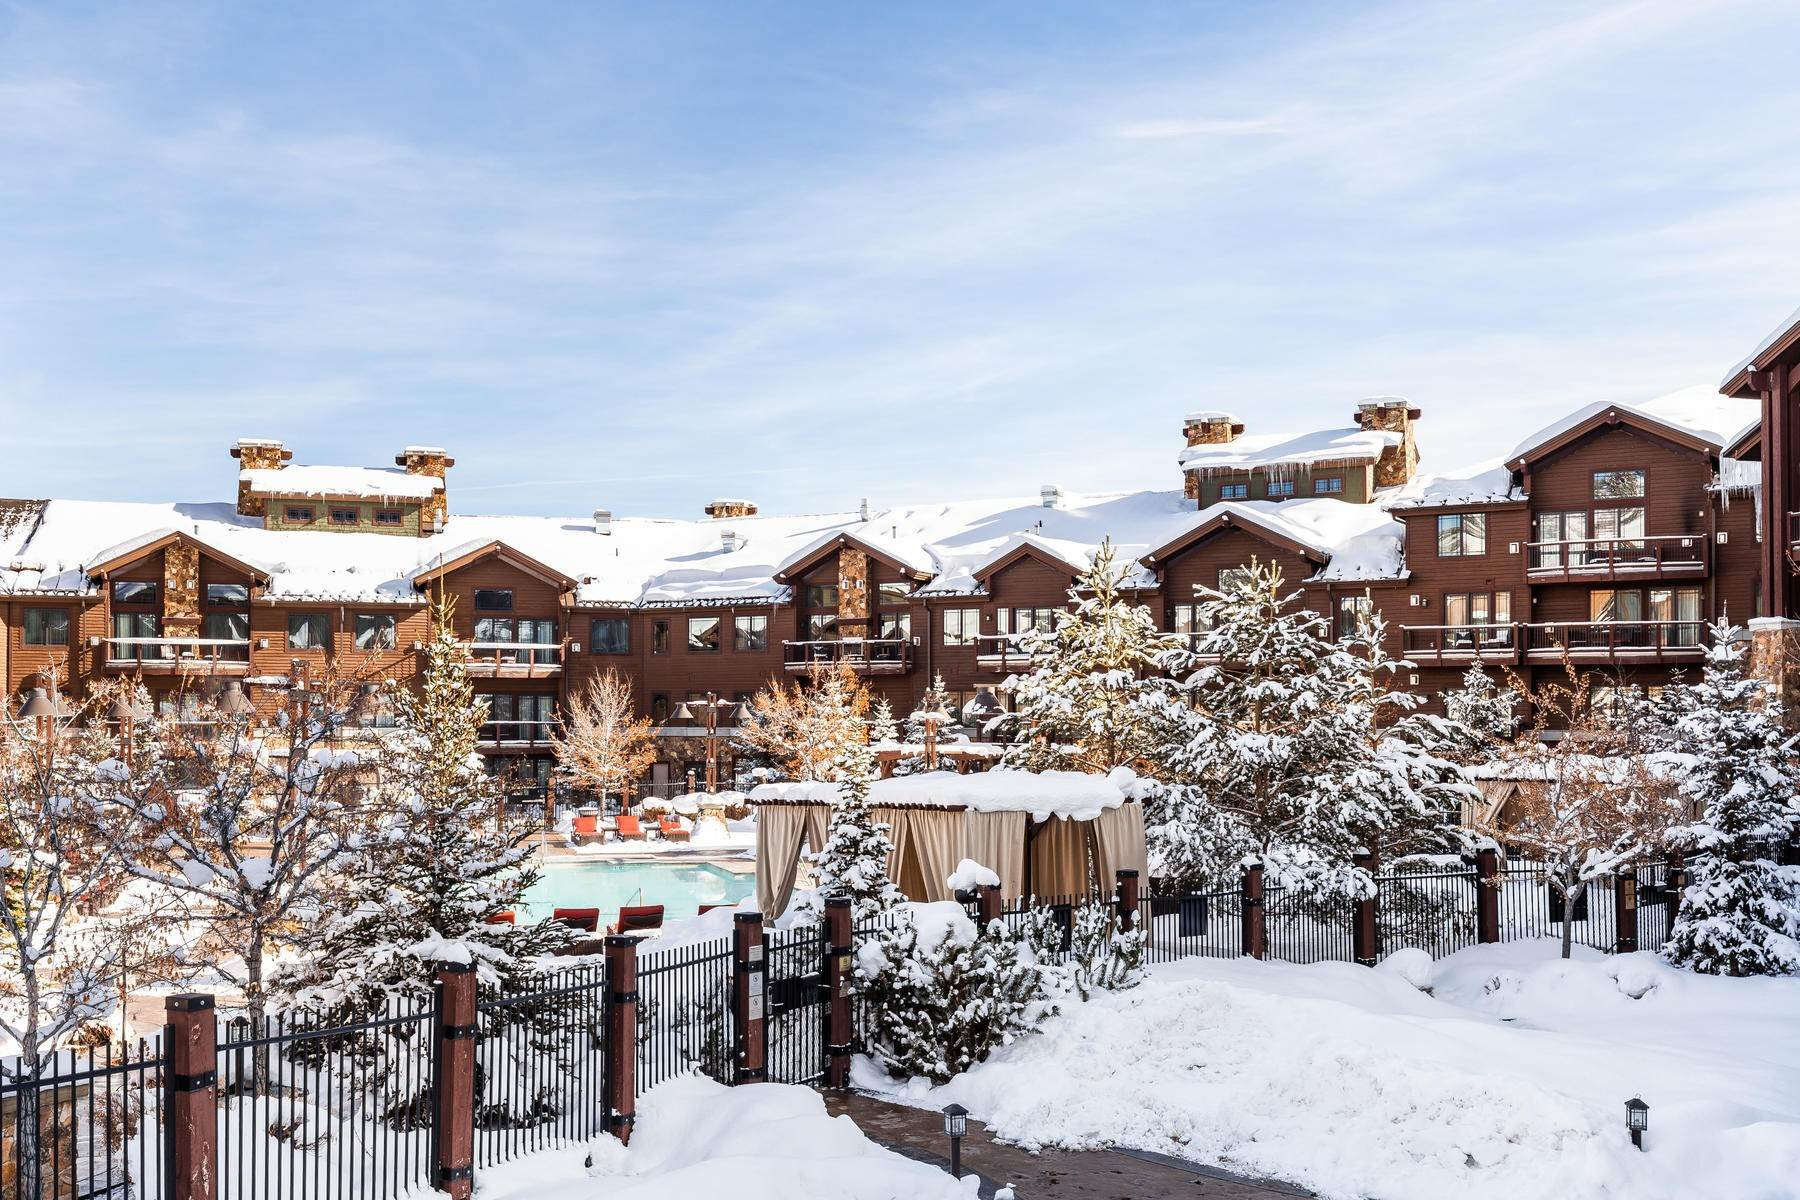 33. Condominiums at 2100 W Frostwood Boulevard #5172 Park City, Utah 84098 United States